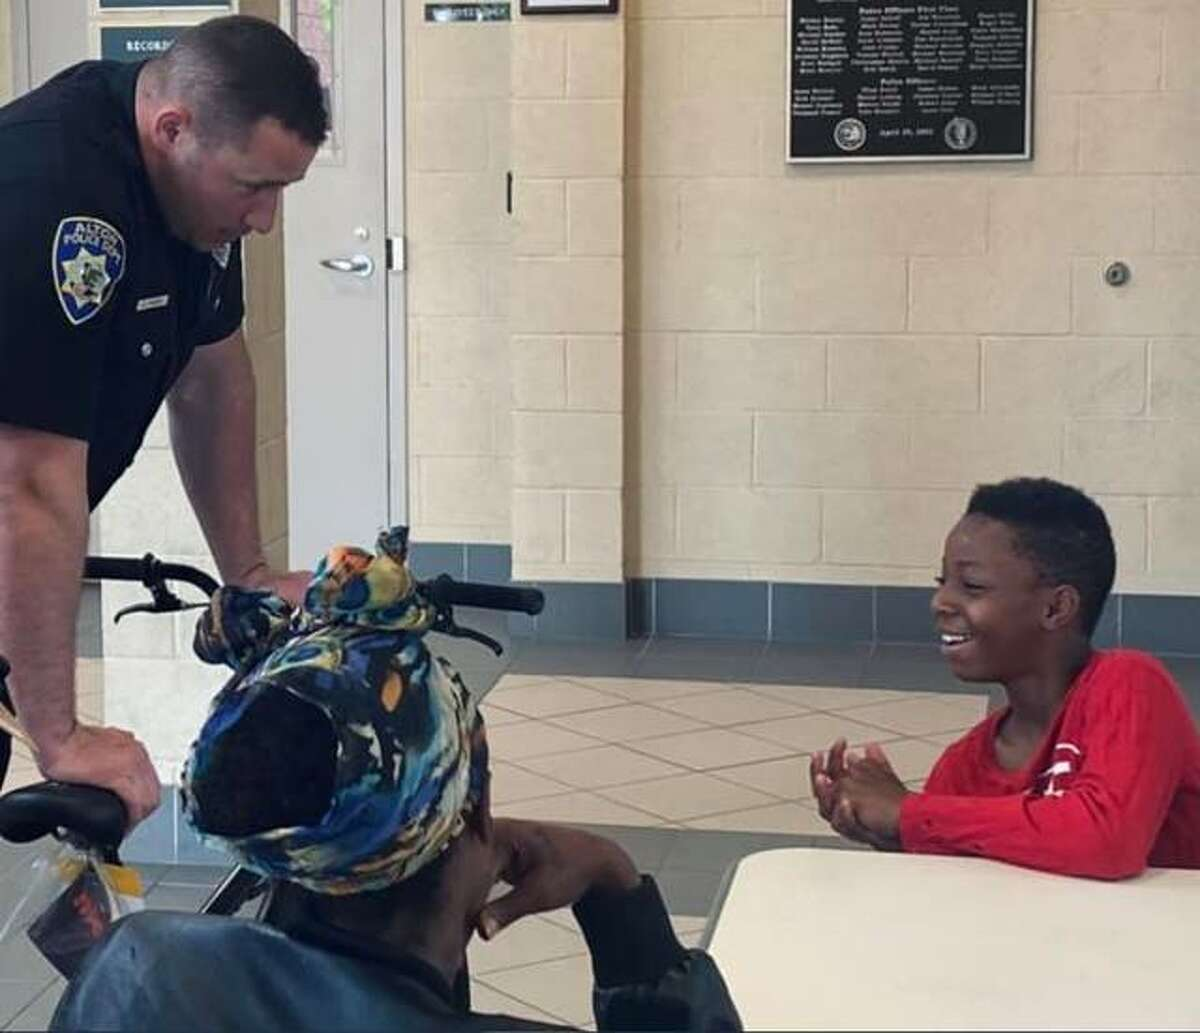 Keyondre Latham of Alton, far right, receives a new bicycle from the Alton Police Department. After Latham's bike was stolen while he was running an errand for his family, officers pitched in and bought him a new one.